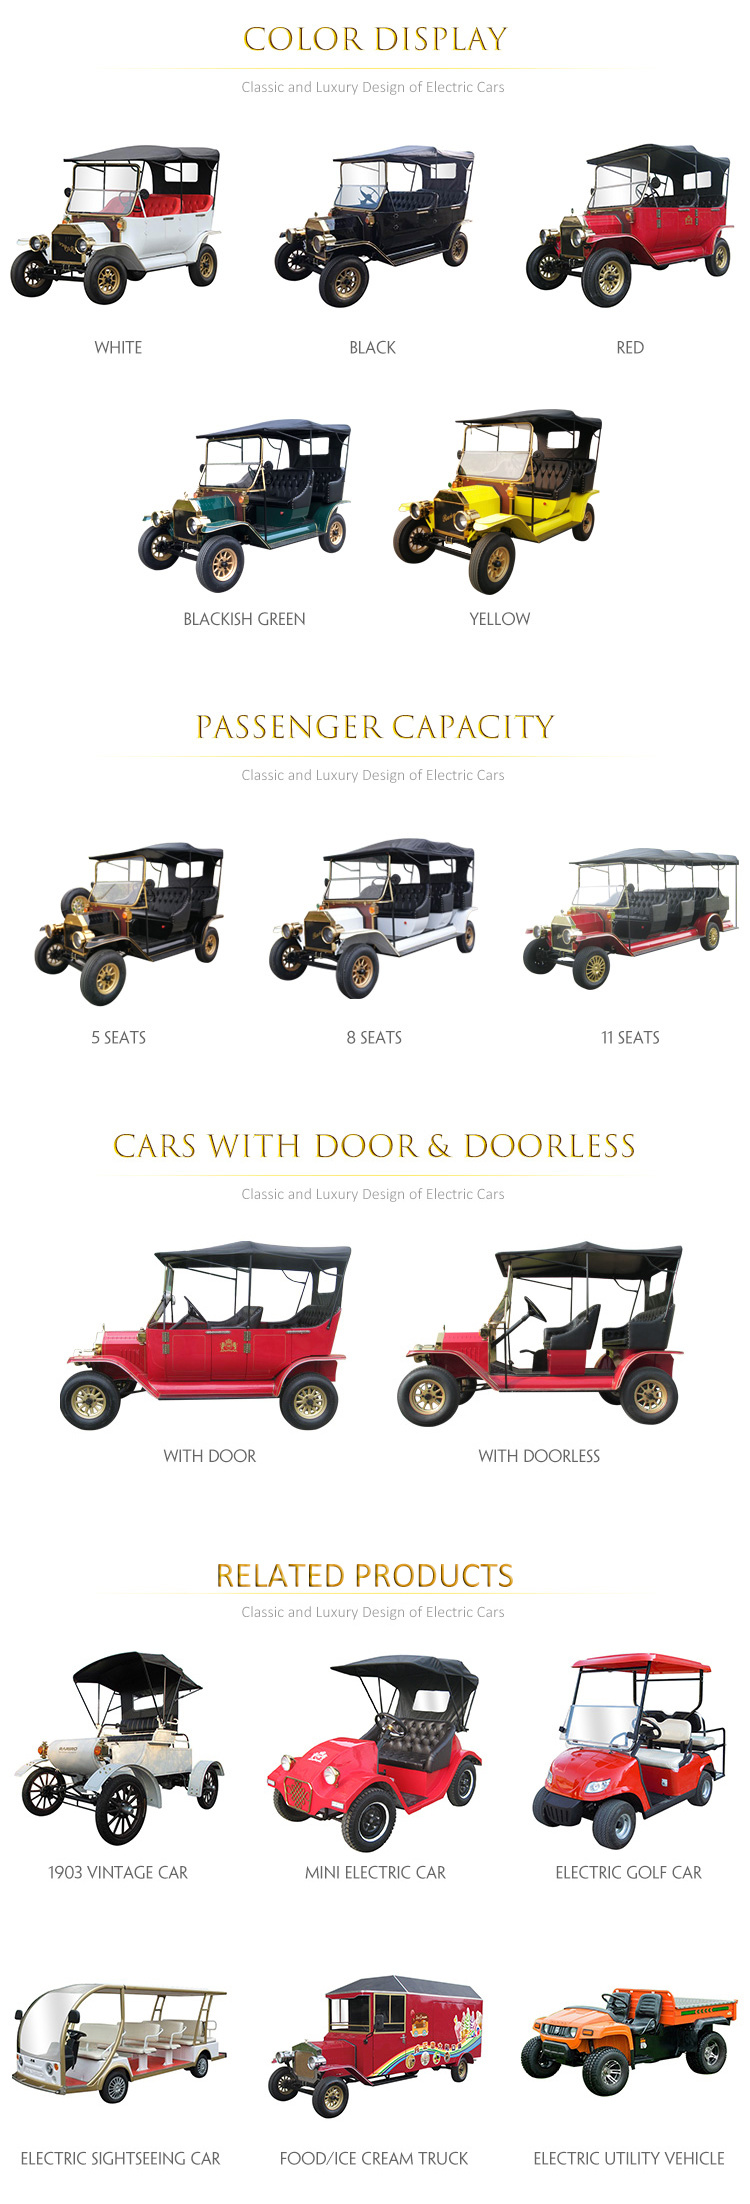 [Hot Item] 48V Battery Power Golf Cart Vintage Sightseeing Bus with 30%  Climbing Ability